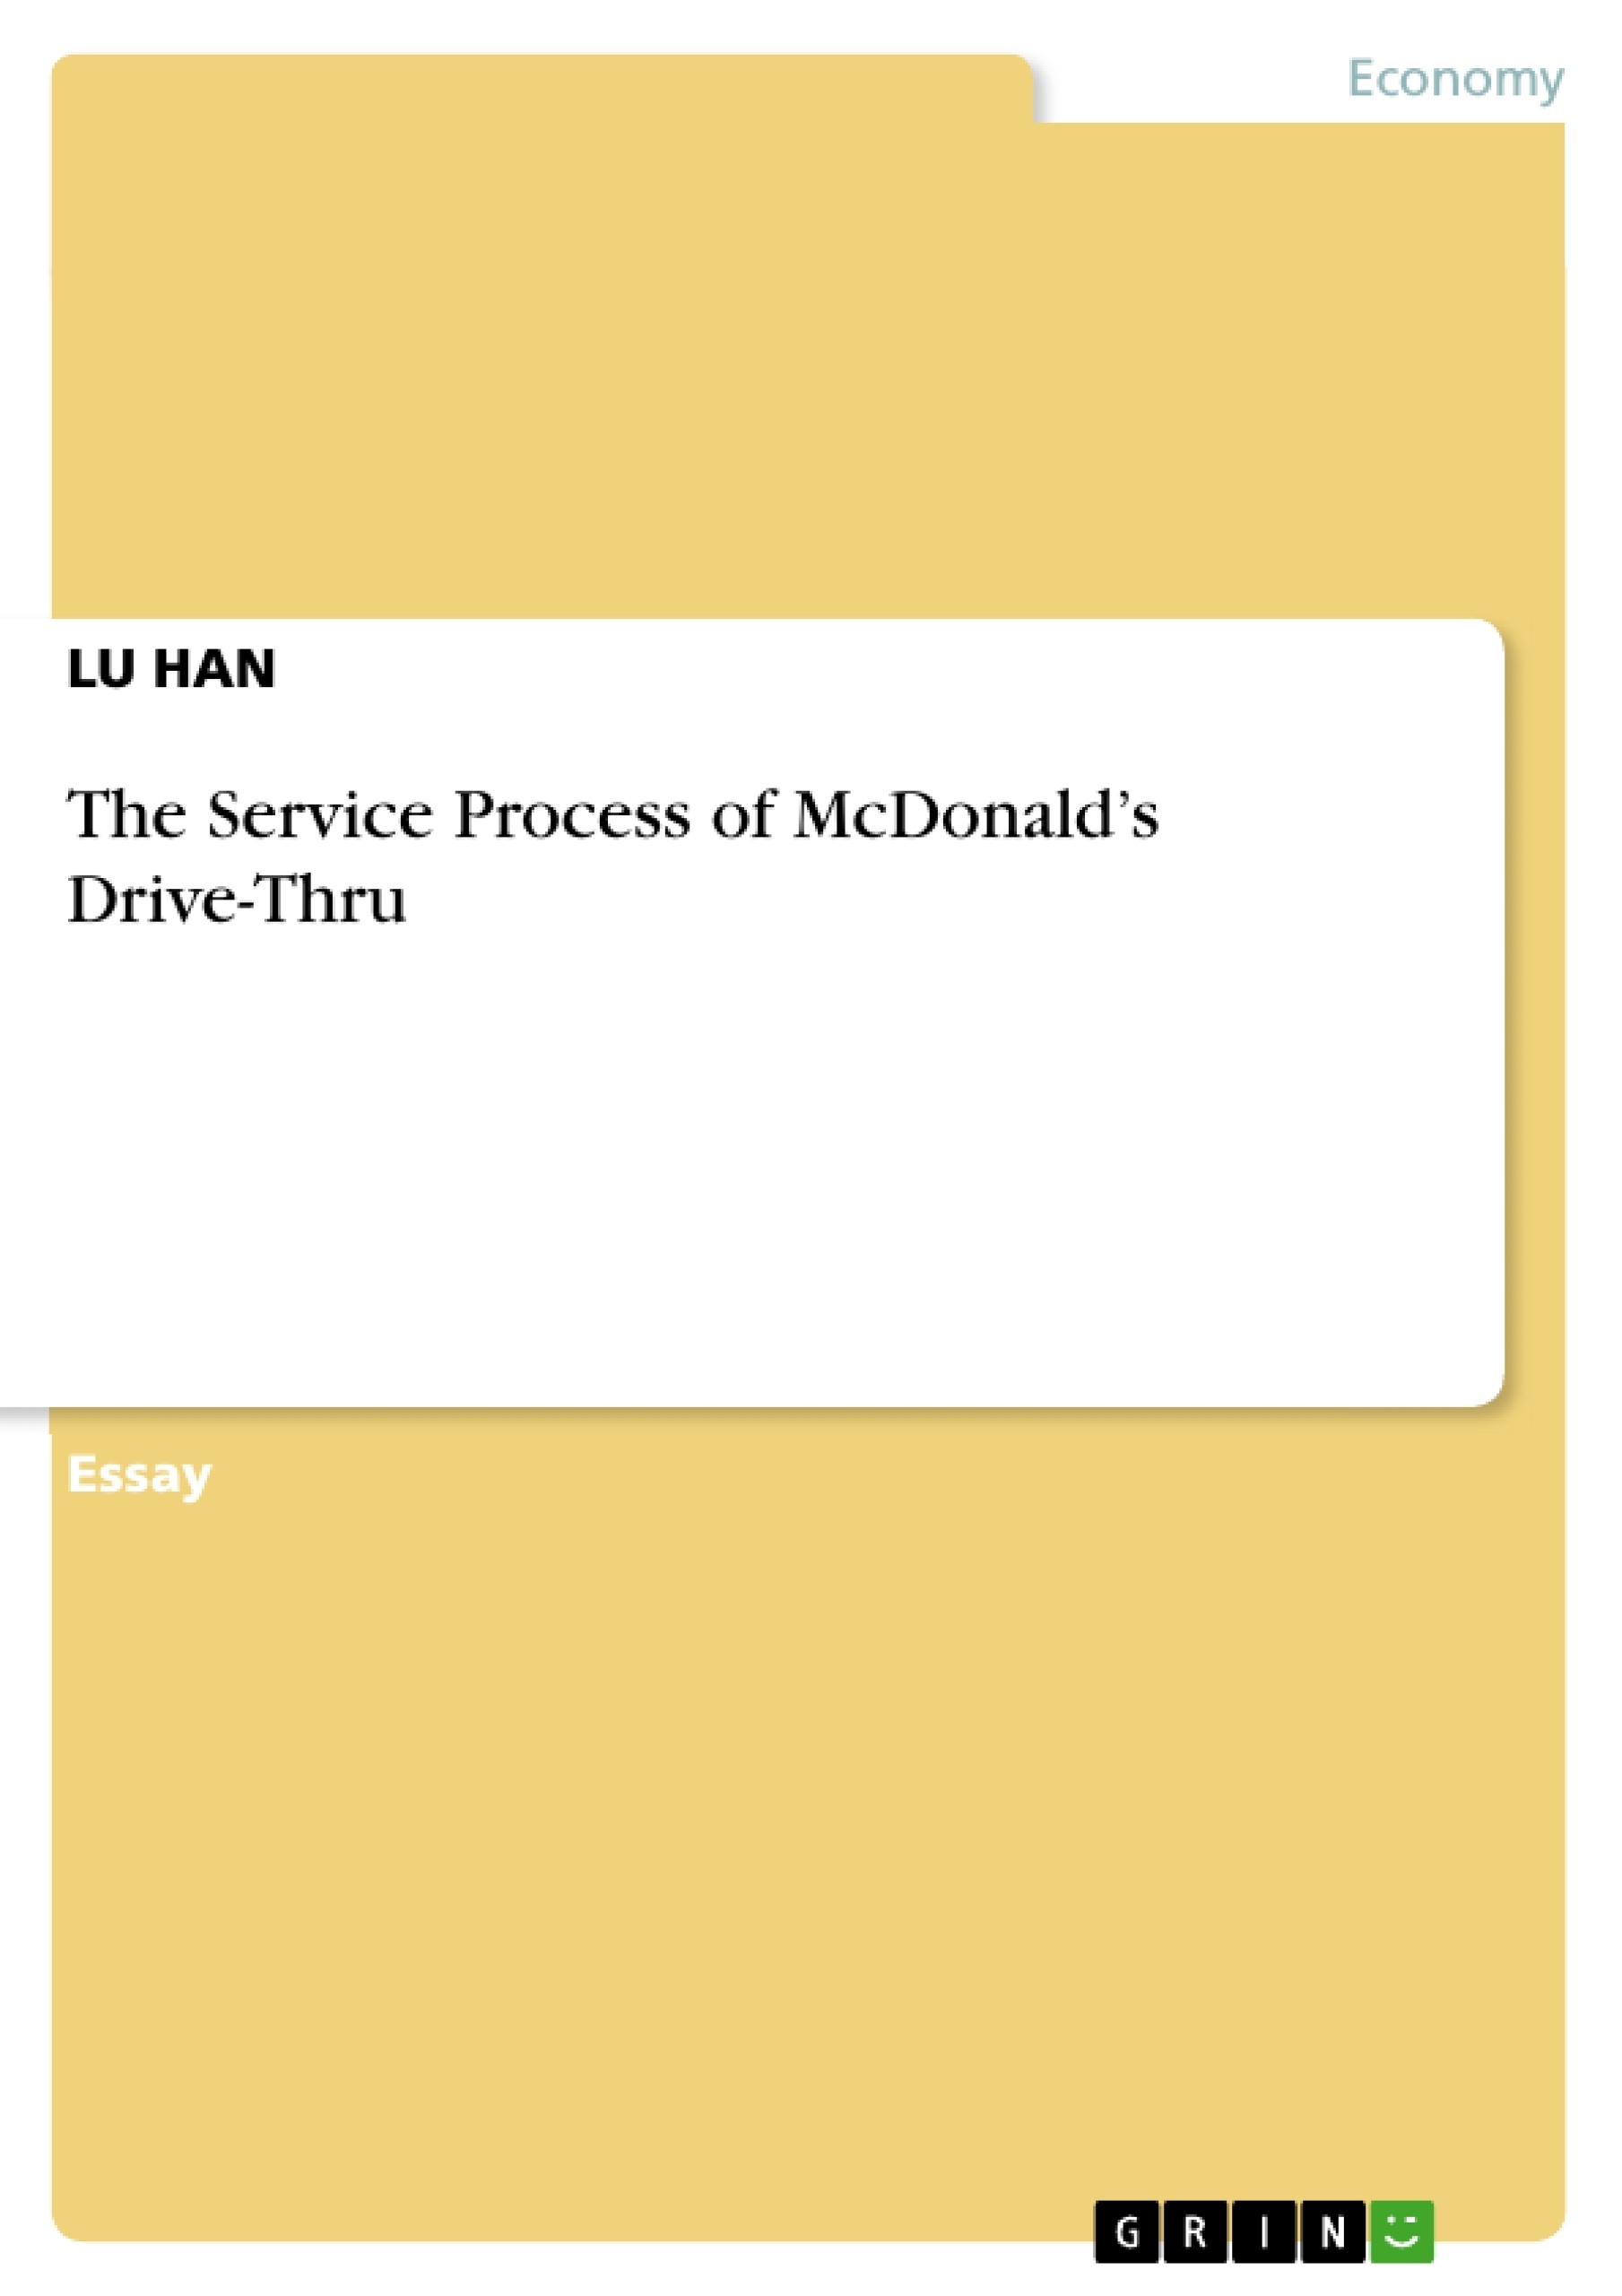 mcdonalds term paper Corporate mcdonald s phone number - 28 images - mcdonald presentation, 380 best images about occult symbolism on, mcdonalds finance report, mcdonald s menu price home.